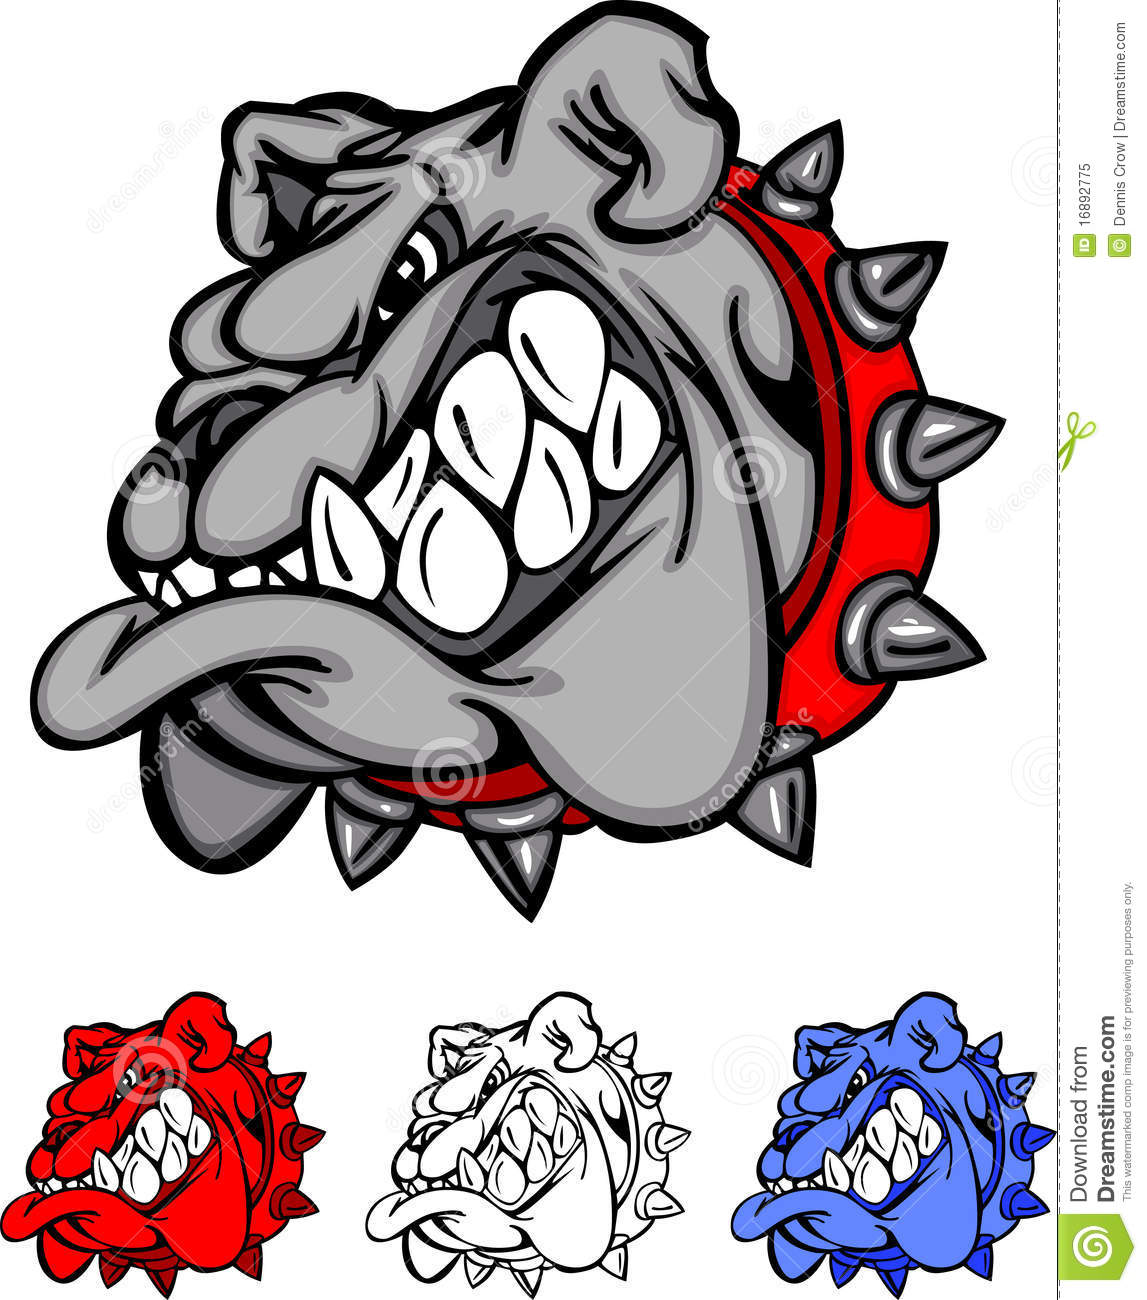 bulldog team mascot vector logo stock vector illustration of rh dreamstime com free bulldog mascot clipart free eagle mascot clipart